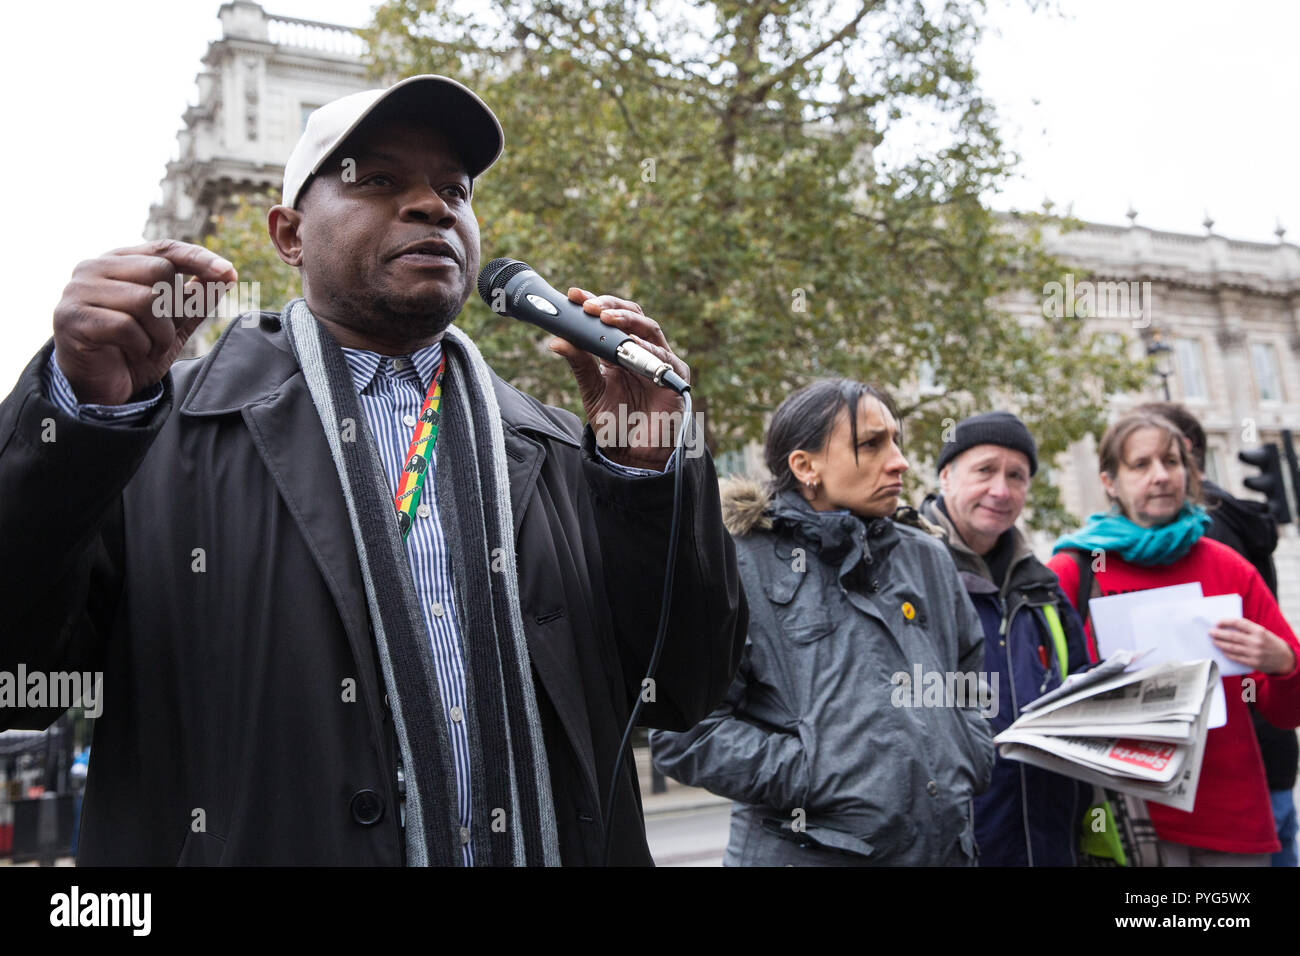 London, UK. 27th October, 2018. Tipper Naphtali, housing of Mikey Powell, addresses campaigners from the United Families and Friends Campaign (UFFC) taking part in the 20th annual procession to Downing Street in remembrance of family members and friends who died in police custody, prison, immigration detention or secure psychiatric hospitals. Mikey Powell, 38, died of asphyxiation shortly after being arrested by West Midlands police in 2003. Credit: Mark Kerrison/Alamy Live News - Stock Image